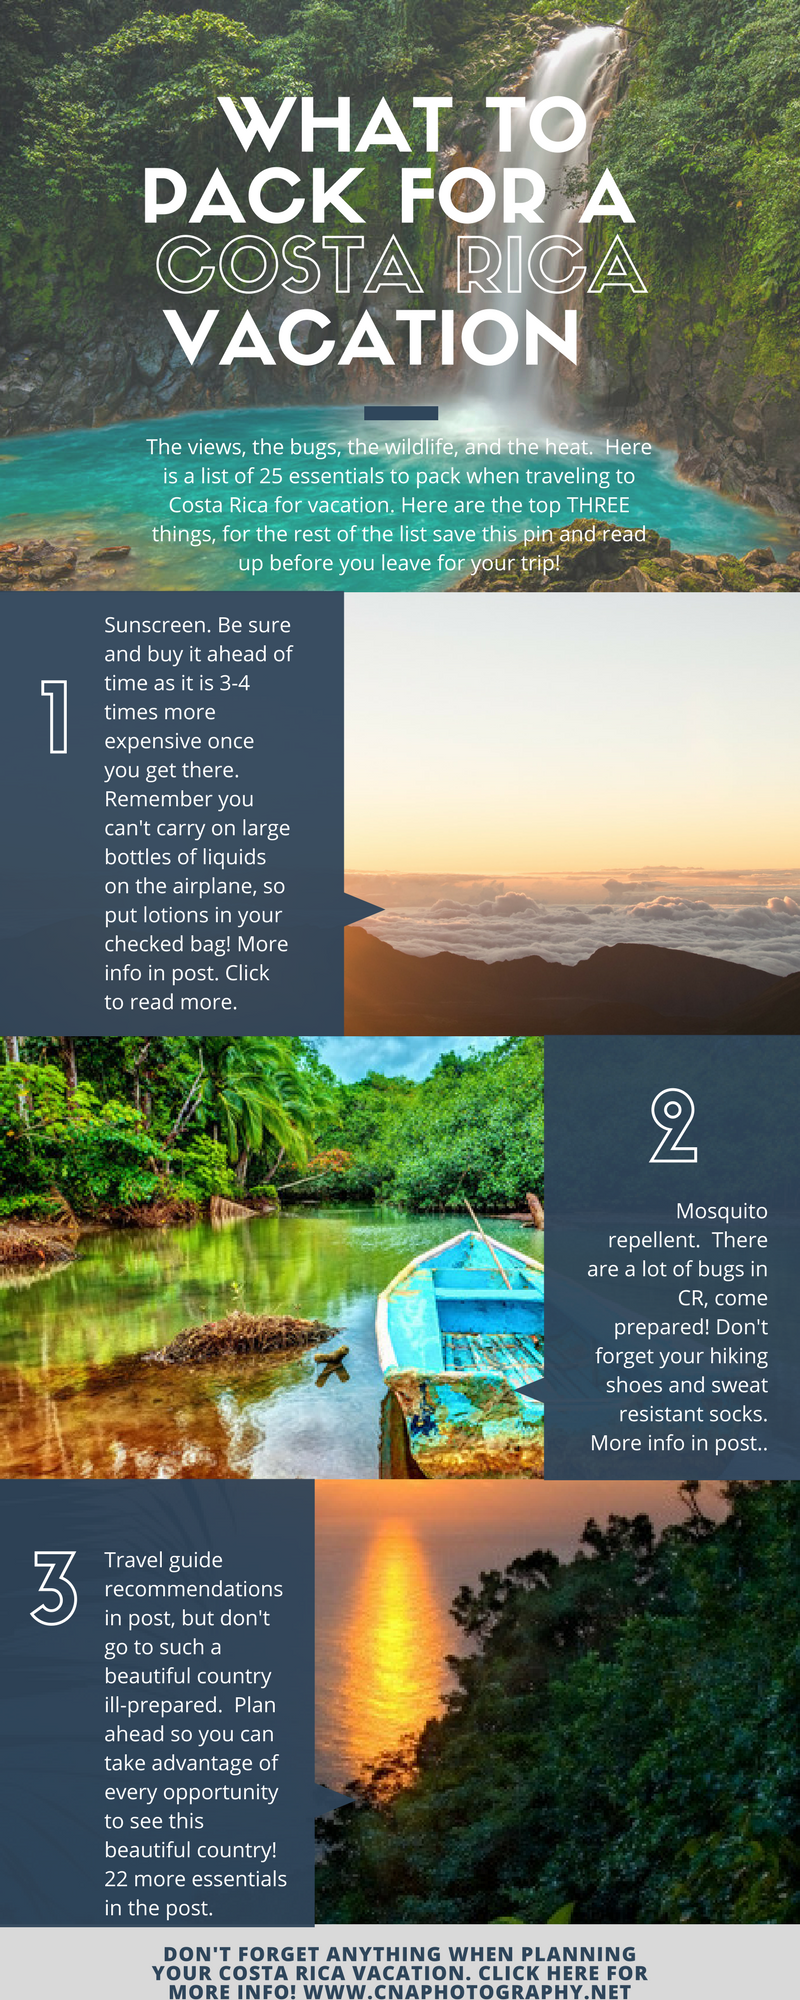 costa rica vacation and travel planning guide.png